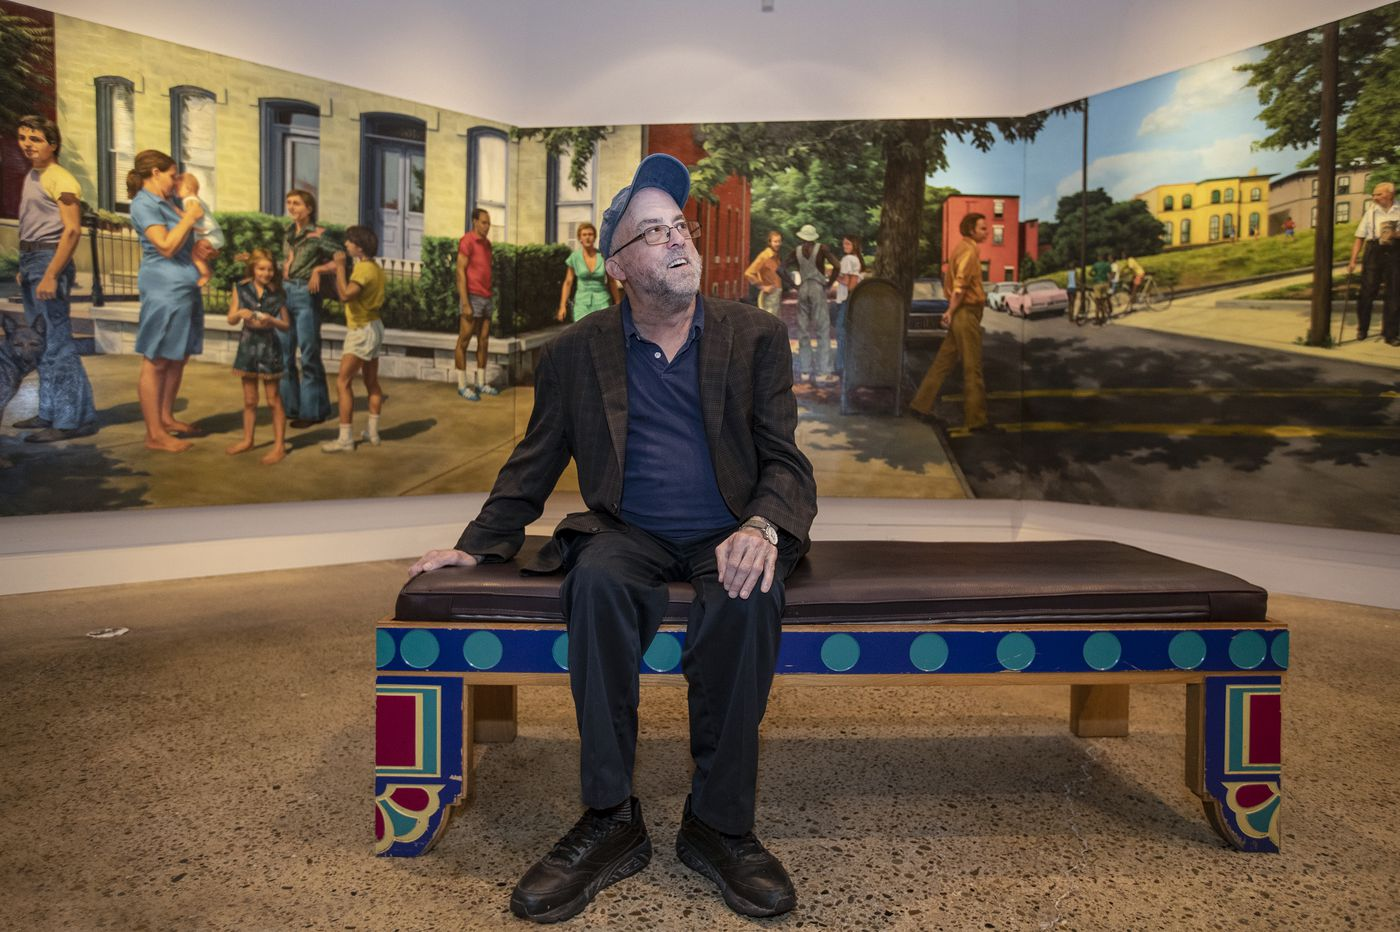 'Out of the picture too soon': Painter Bill Scott finds the soul of Philadelphia in his late friend Edith Neff's art